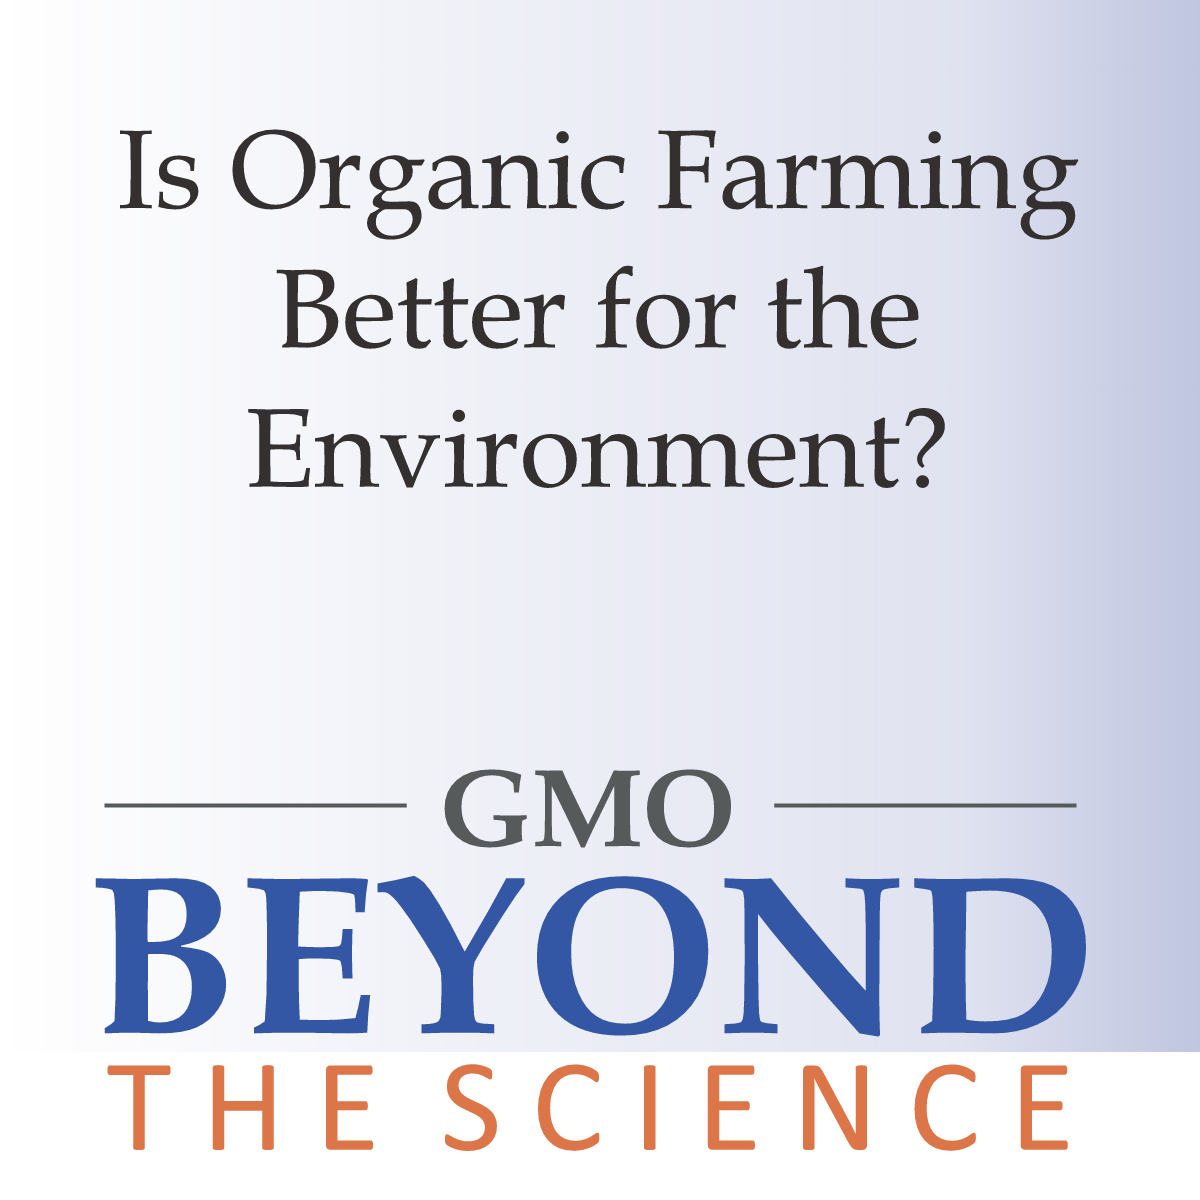 Is Organic Farming Better for the Environment?